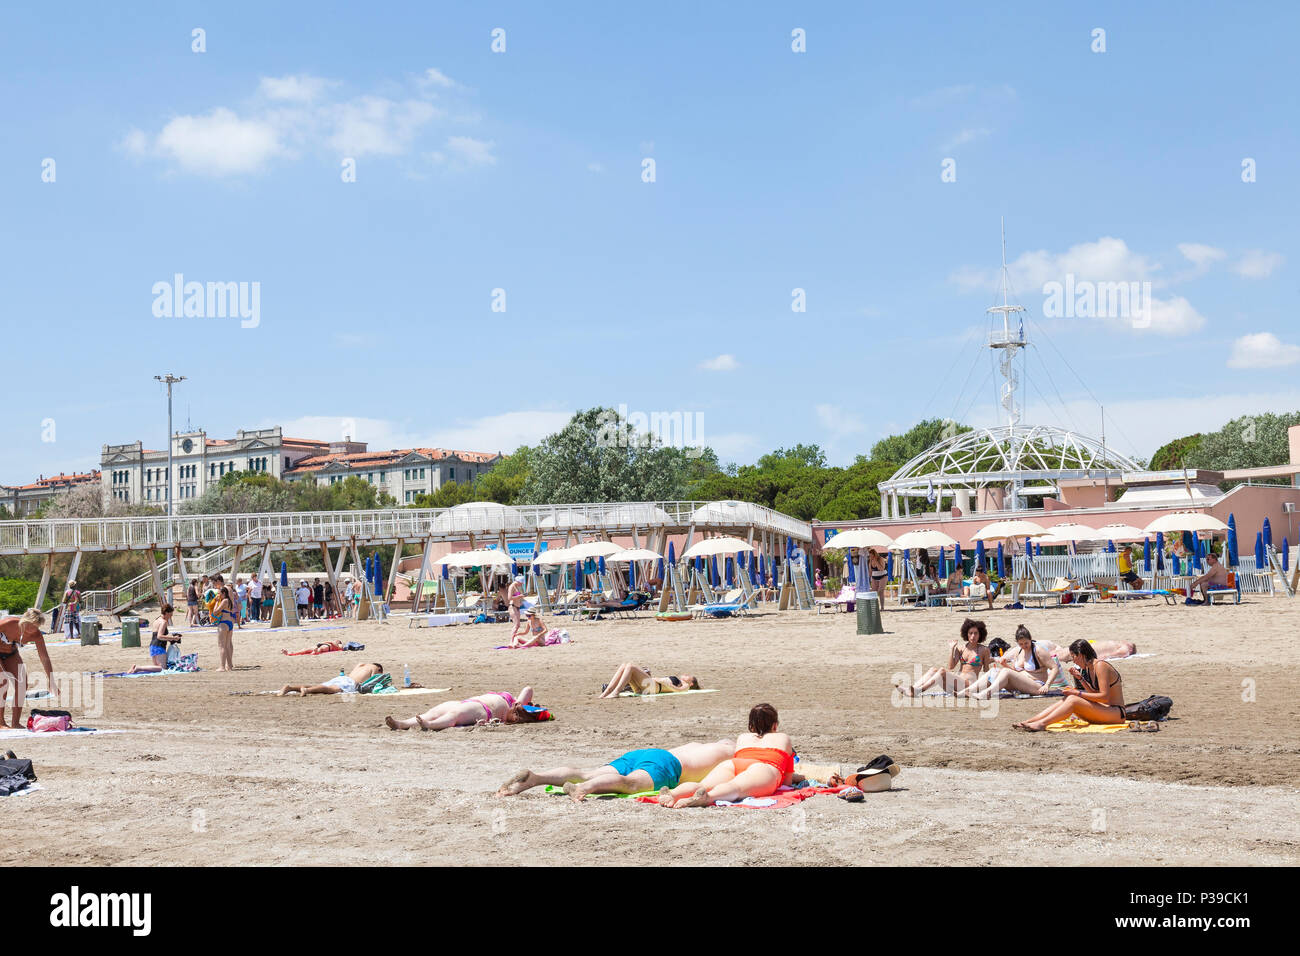 People Sunbathing On Blue Moon Beach Lido Di Venezia Lido